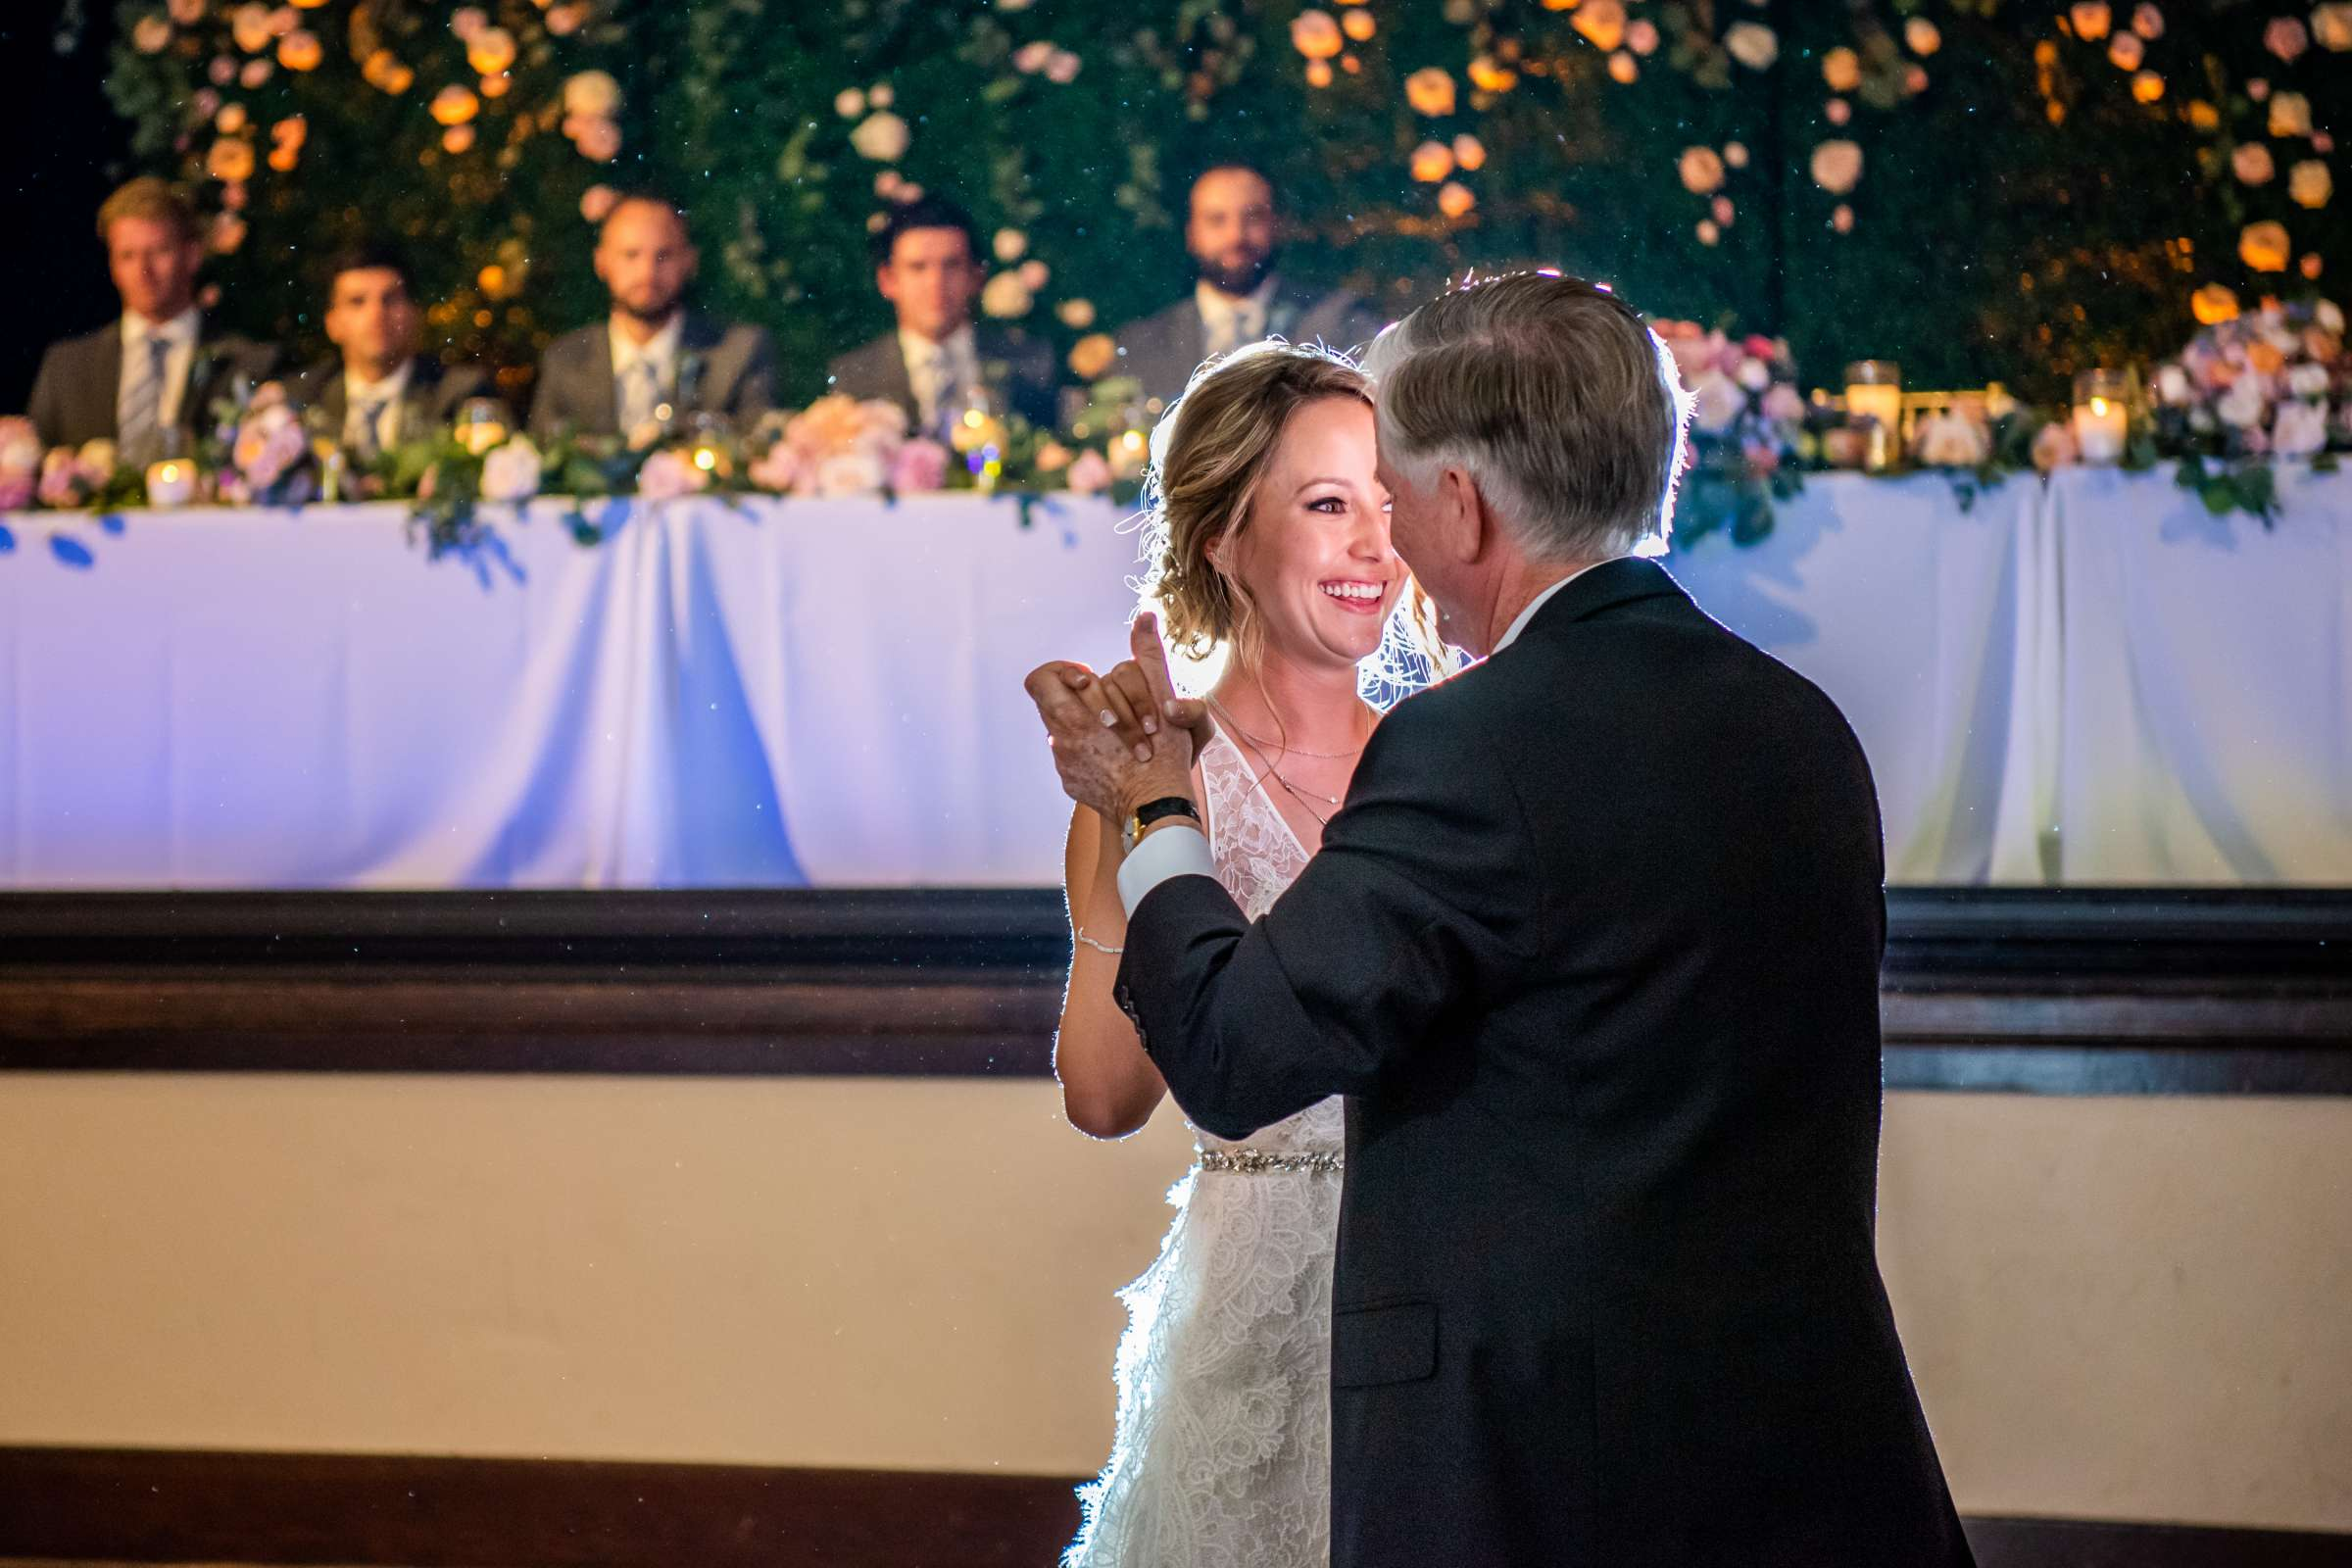 The Prado Wedding coordinated by Bliss Events, Sara and Marvin Wedding Photo #559633 by True Photography